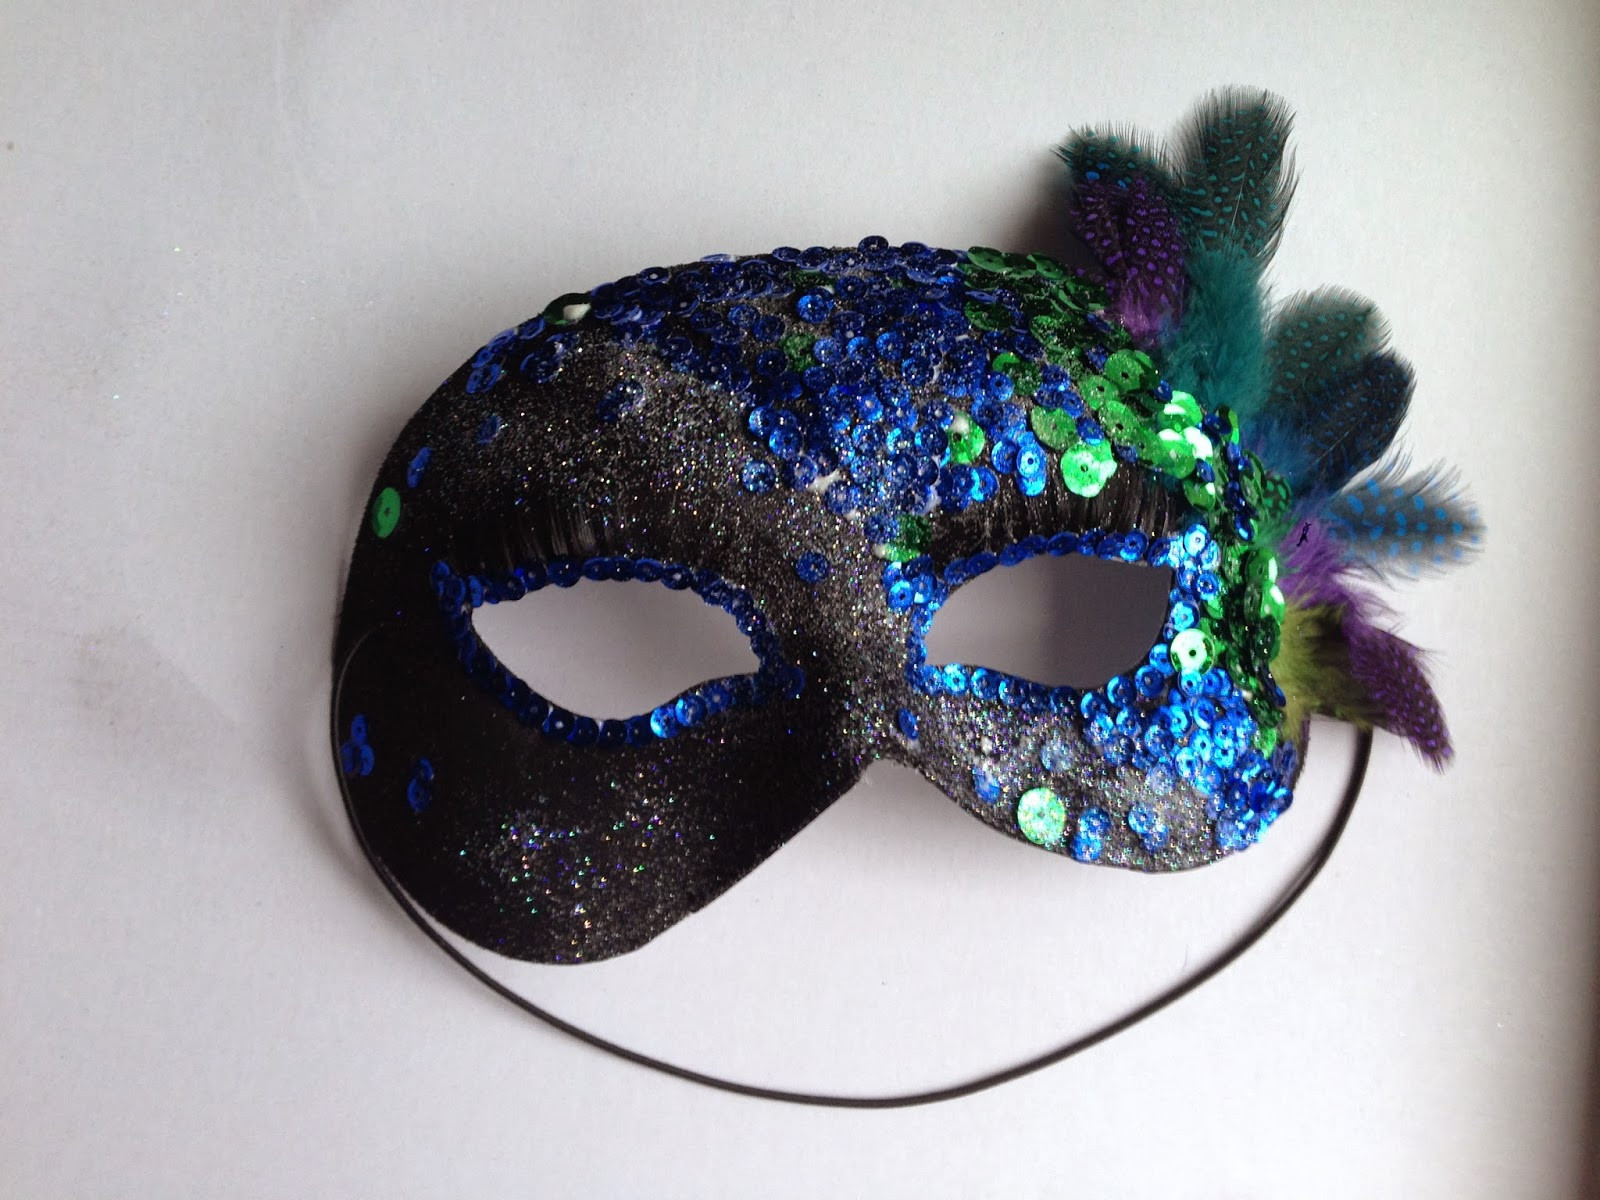 Best ideas about Masquerade Masks DIY . Save or Pin Super Simple DIY Masquerade Mask Now.